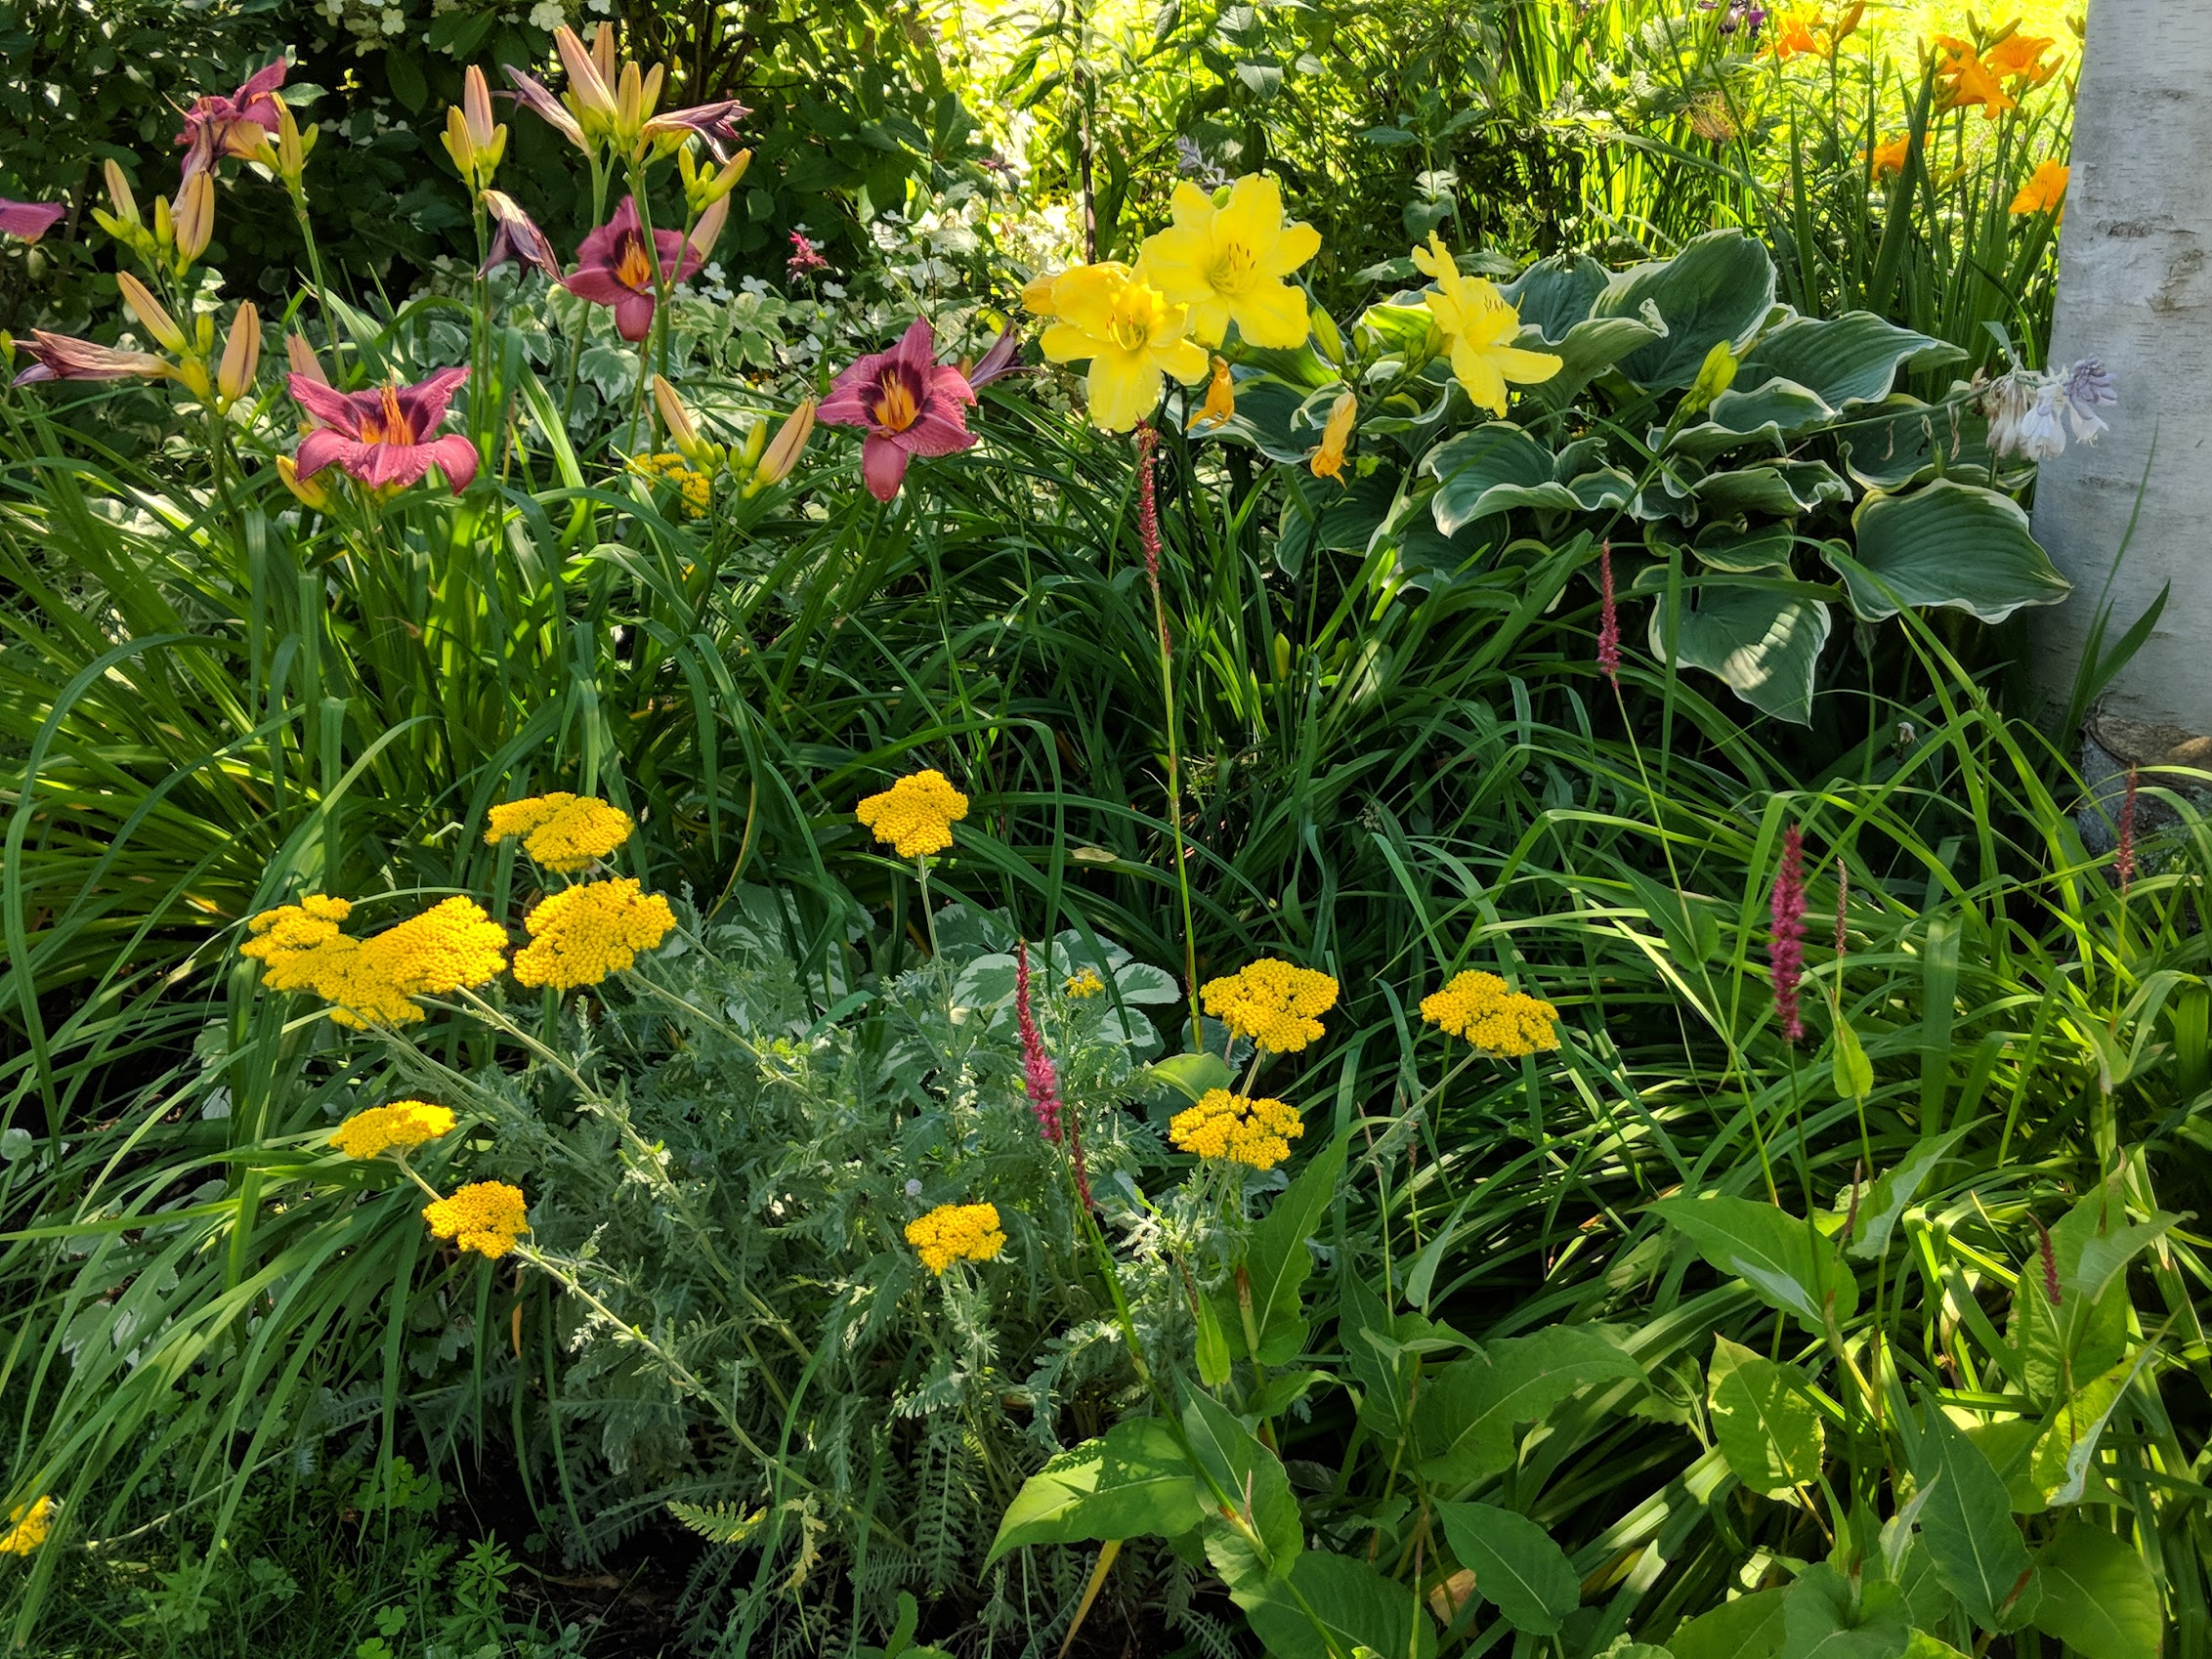 Daylilies, yarrow and persicaria